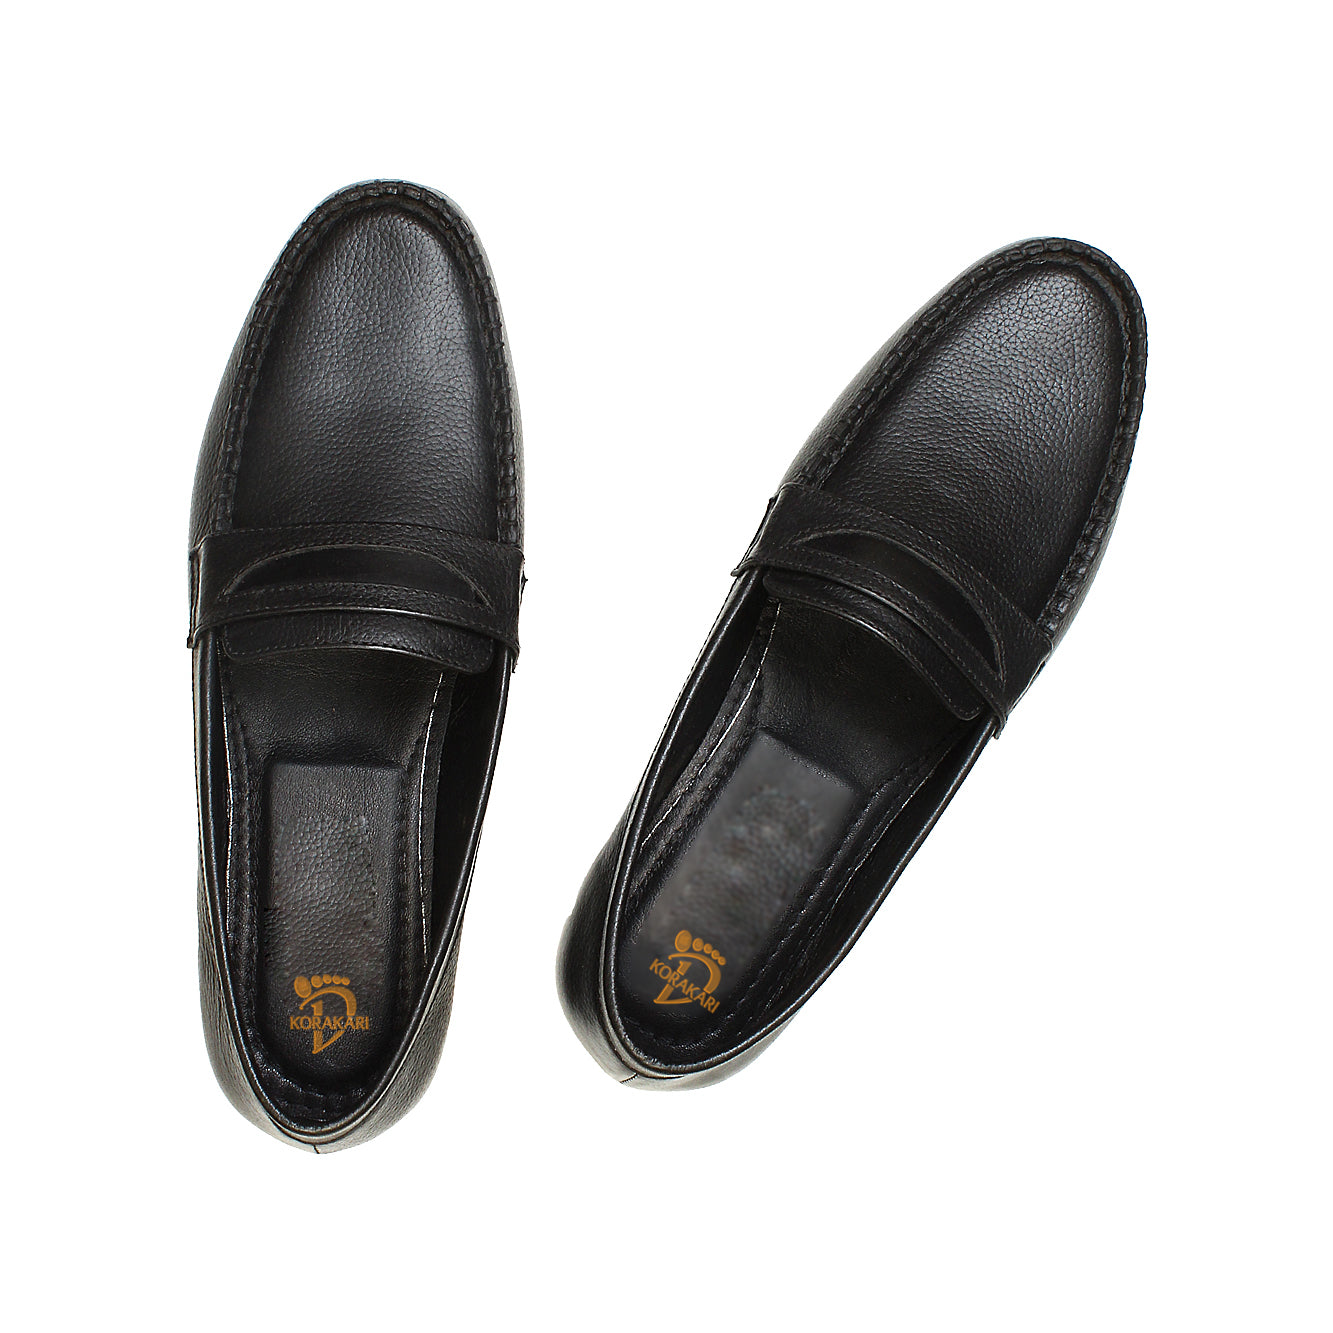 Casual Handmade Leather Loafer Black Shoe for Men KRKA-S-009